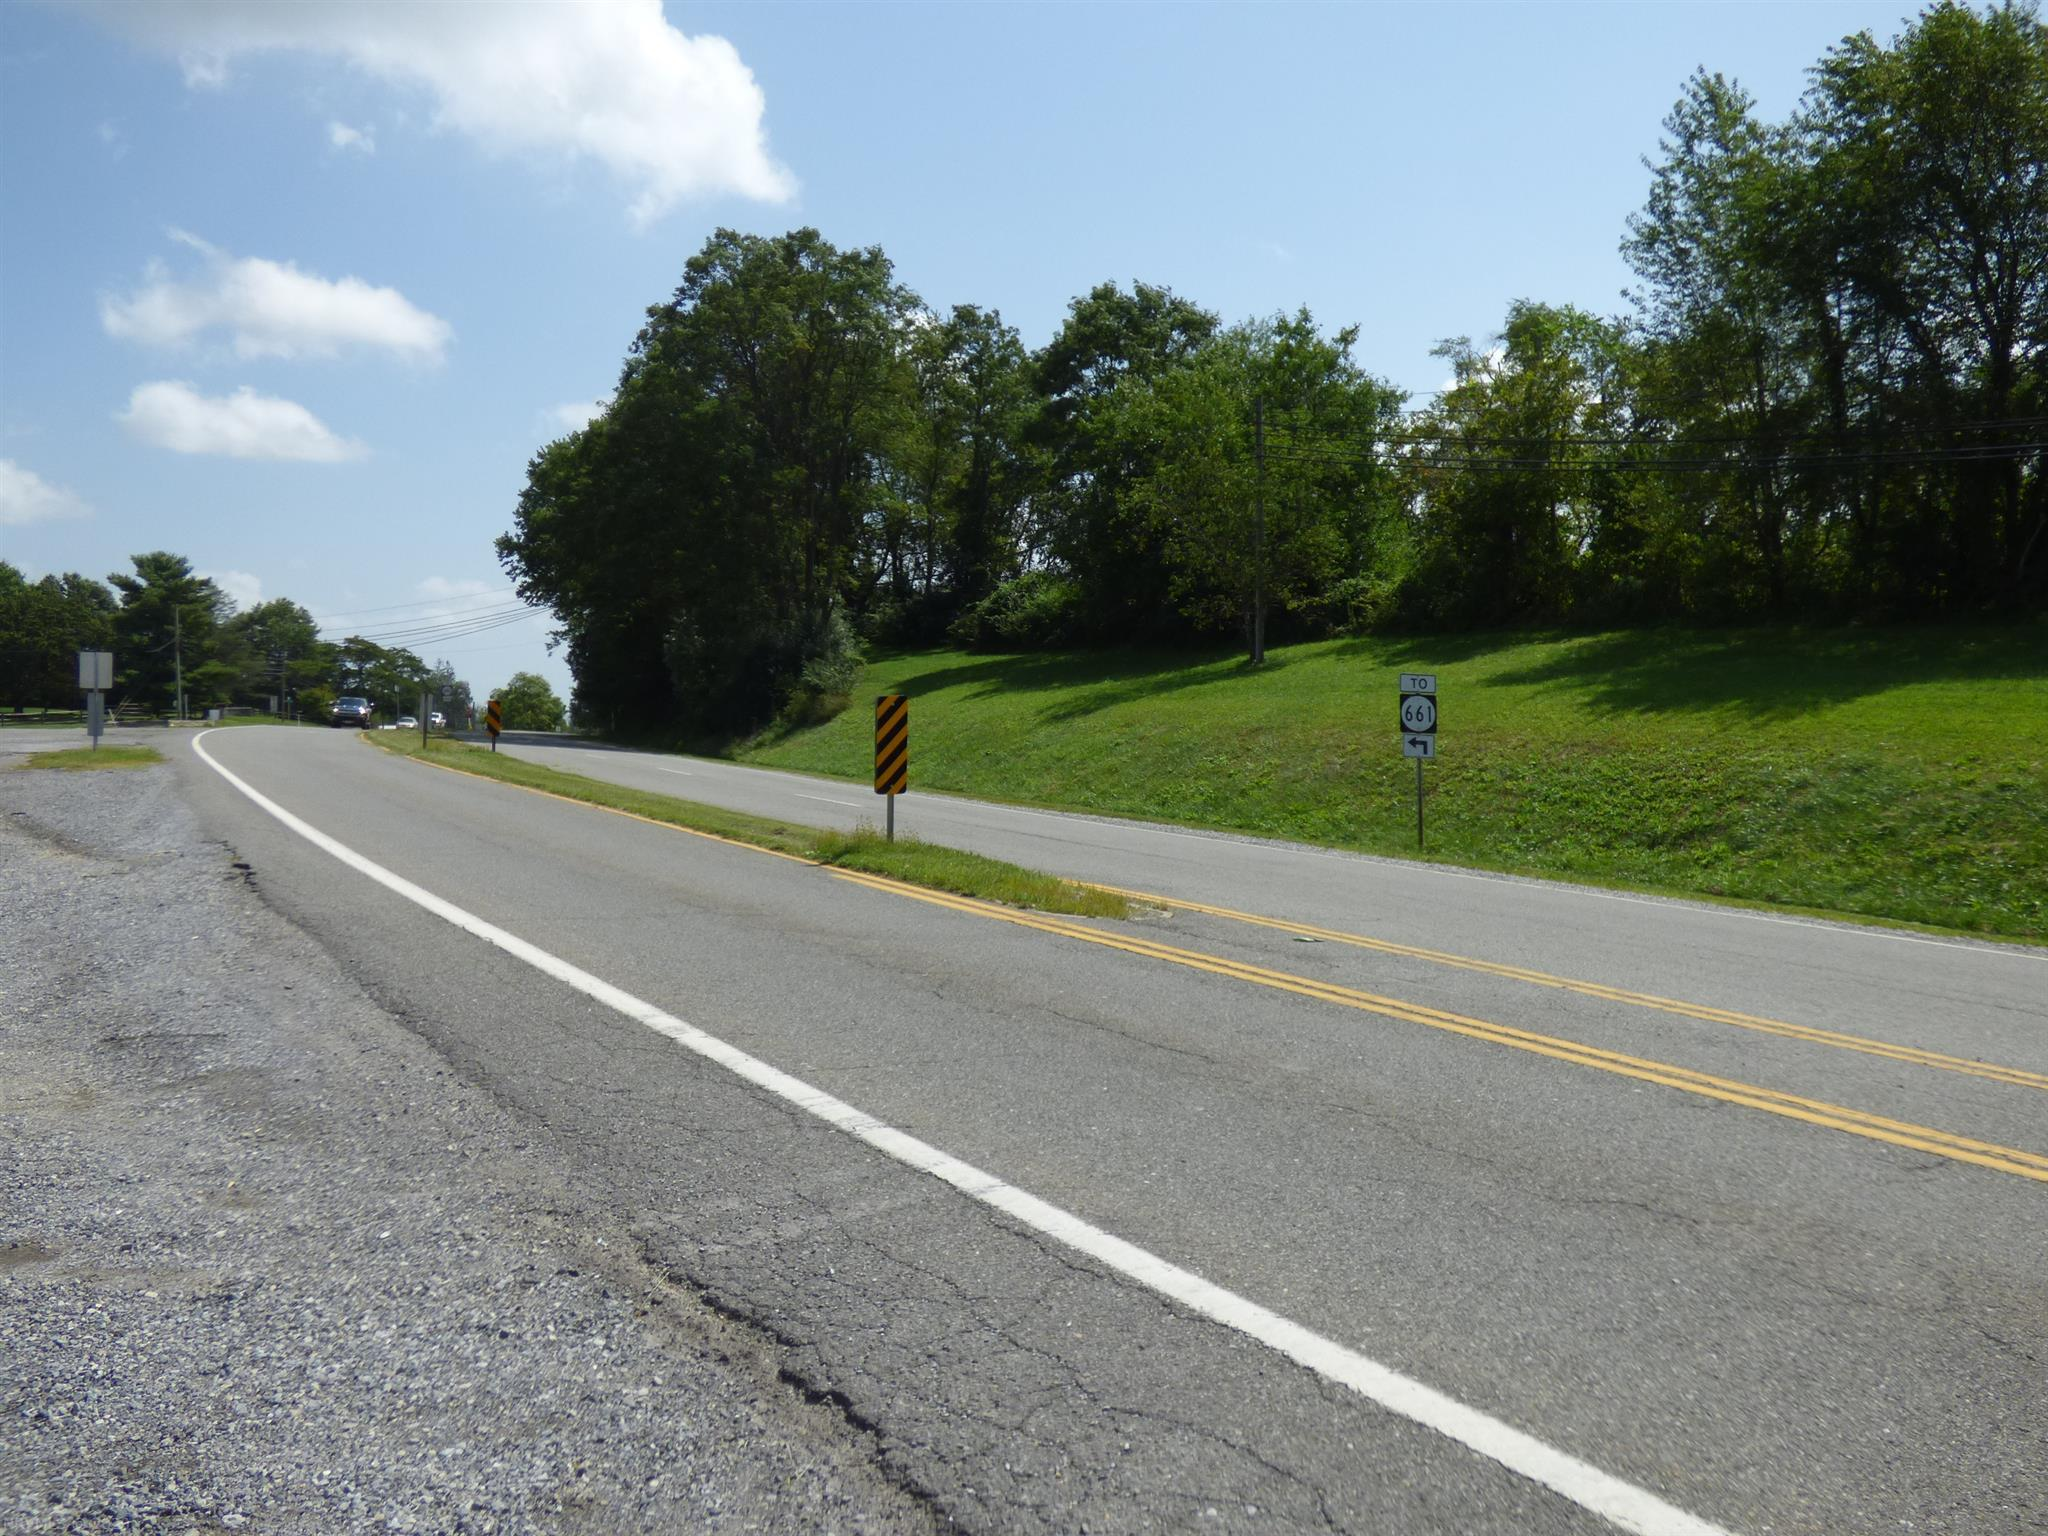 Just over 9 acres with 900 feet of road frontage right off of exit 70. Great investment opportunity for multi-family development. commercial, etc Come see the endless opportunities for this piece of property yourself!